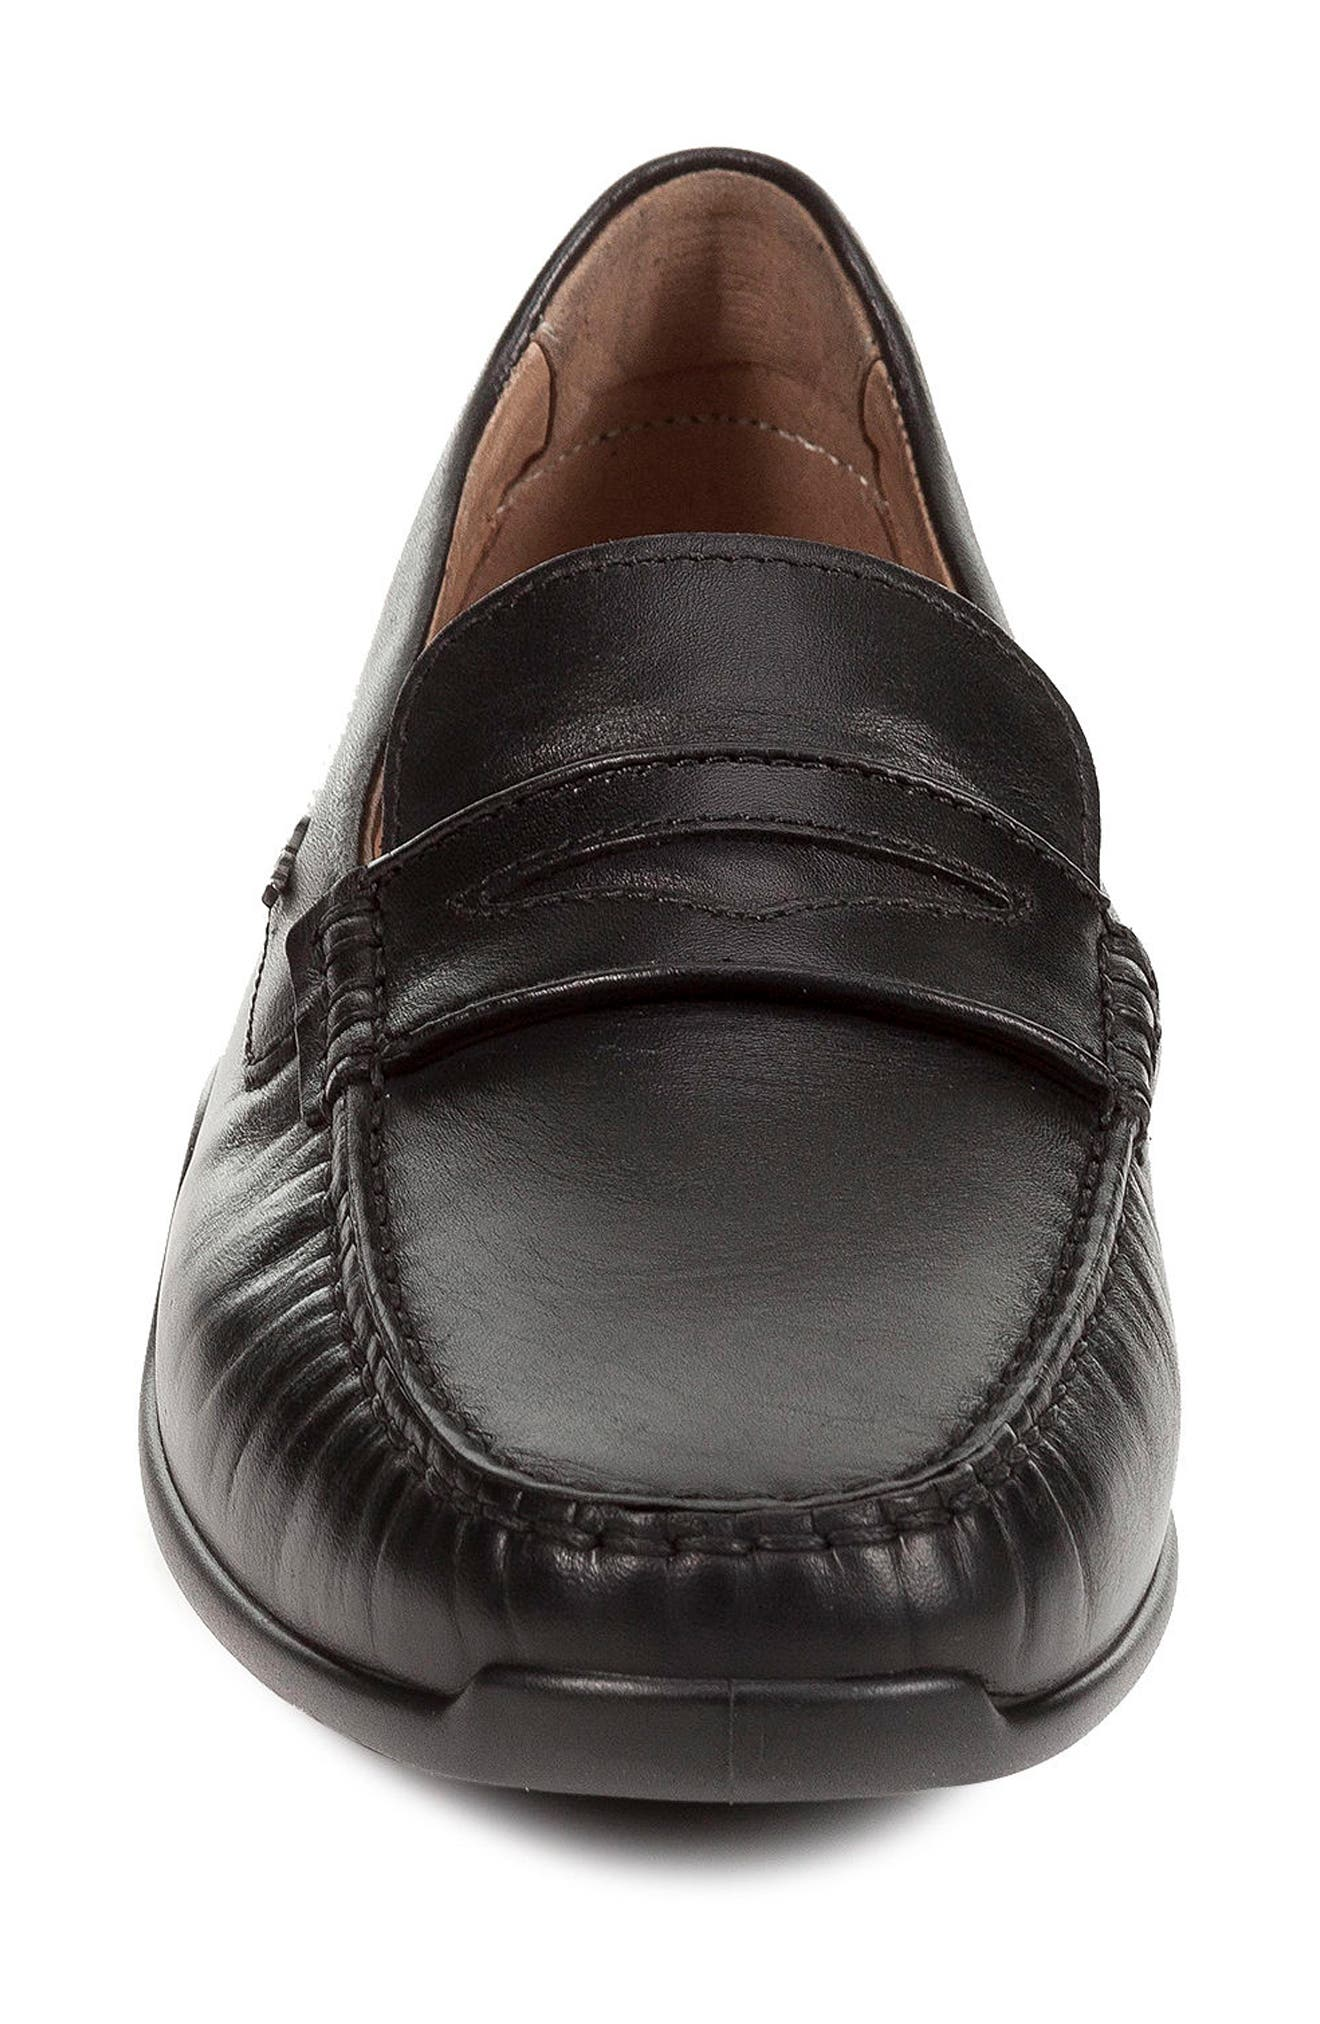 GEOX,                             Xense Penny Loafer,                             Alternate thumbnail 4, color,                             BLACK LEATHER